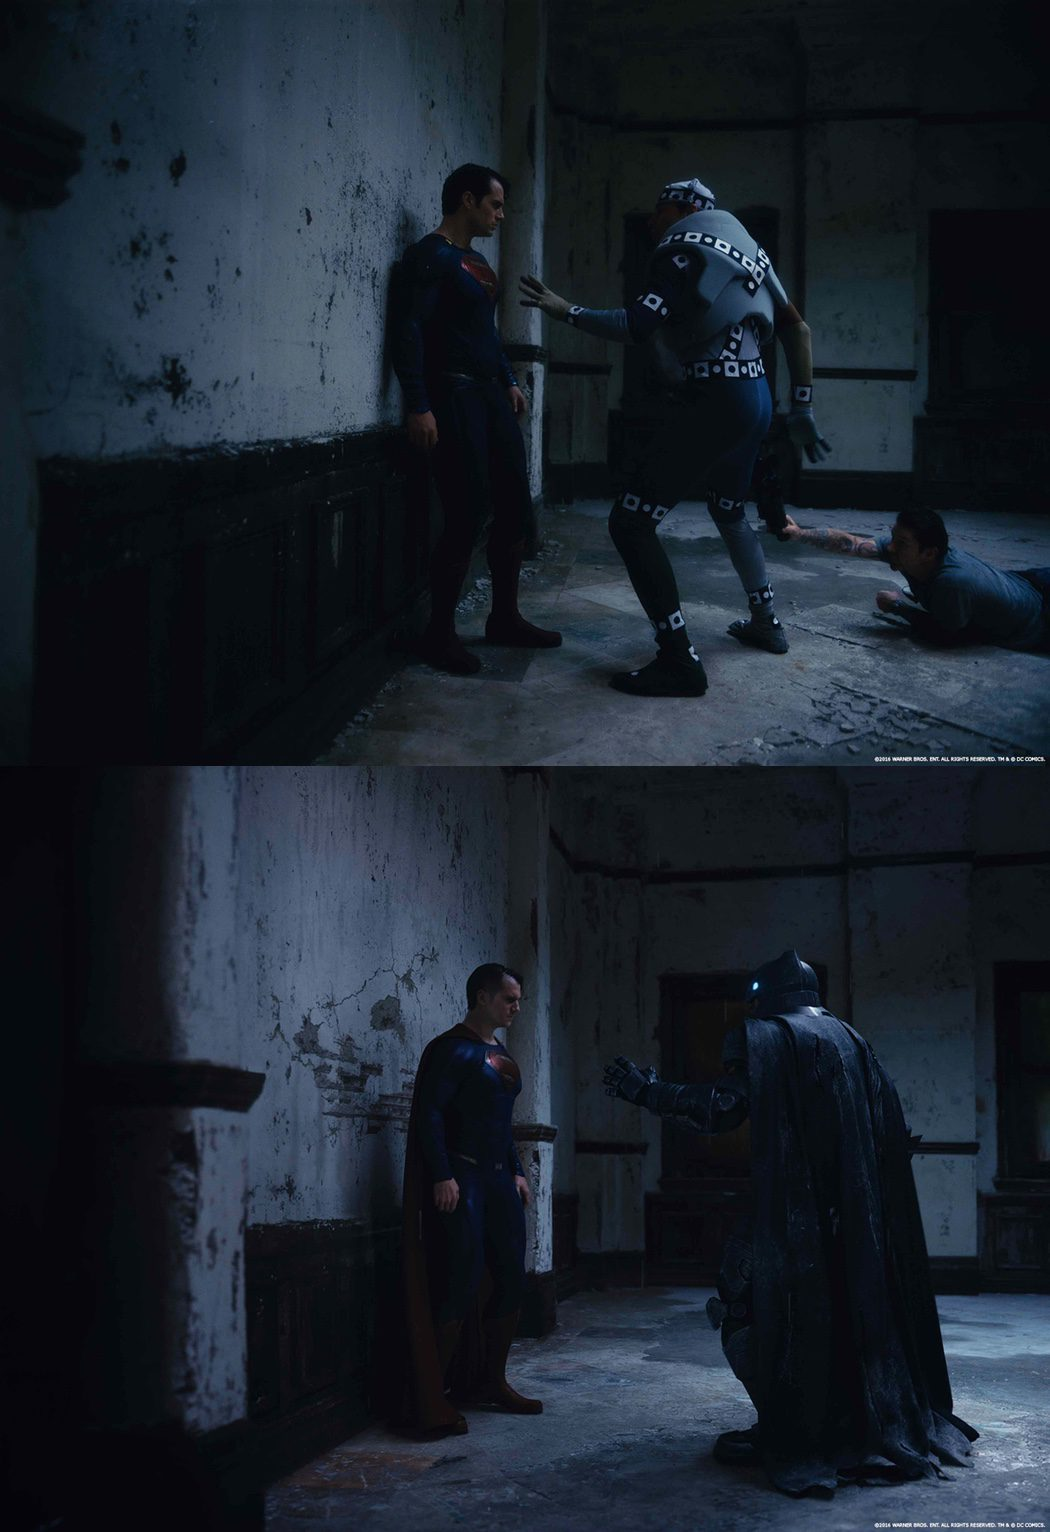 Efectos especiales en la pelea de 'Batman v Superman'